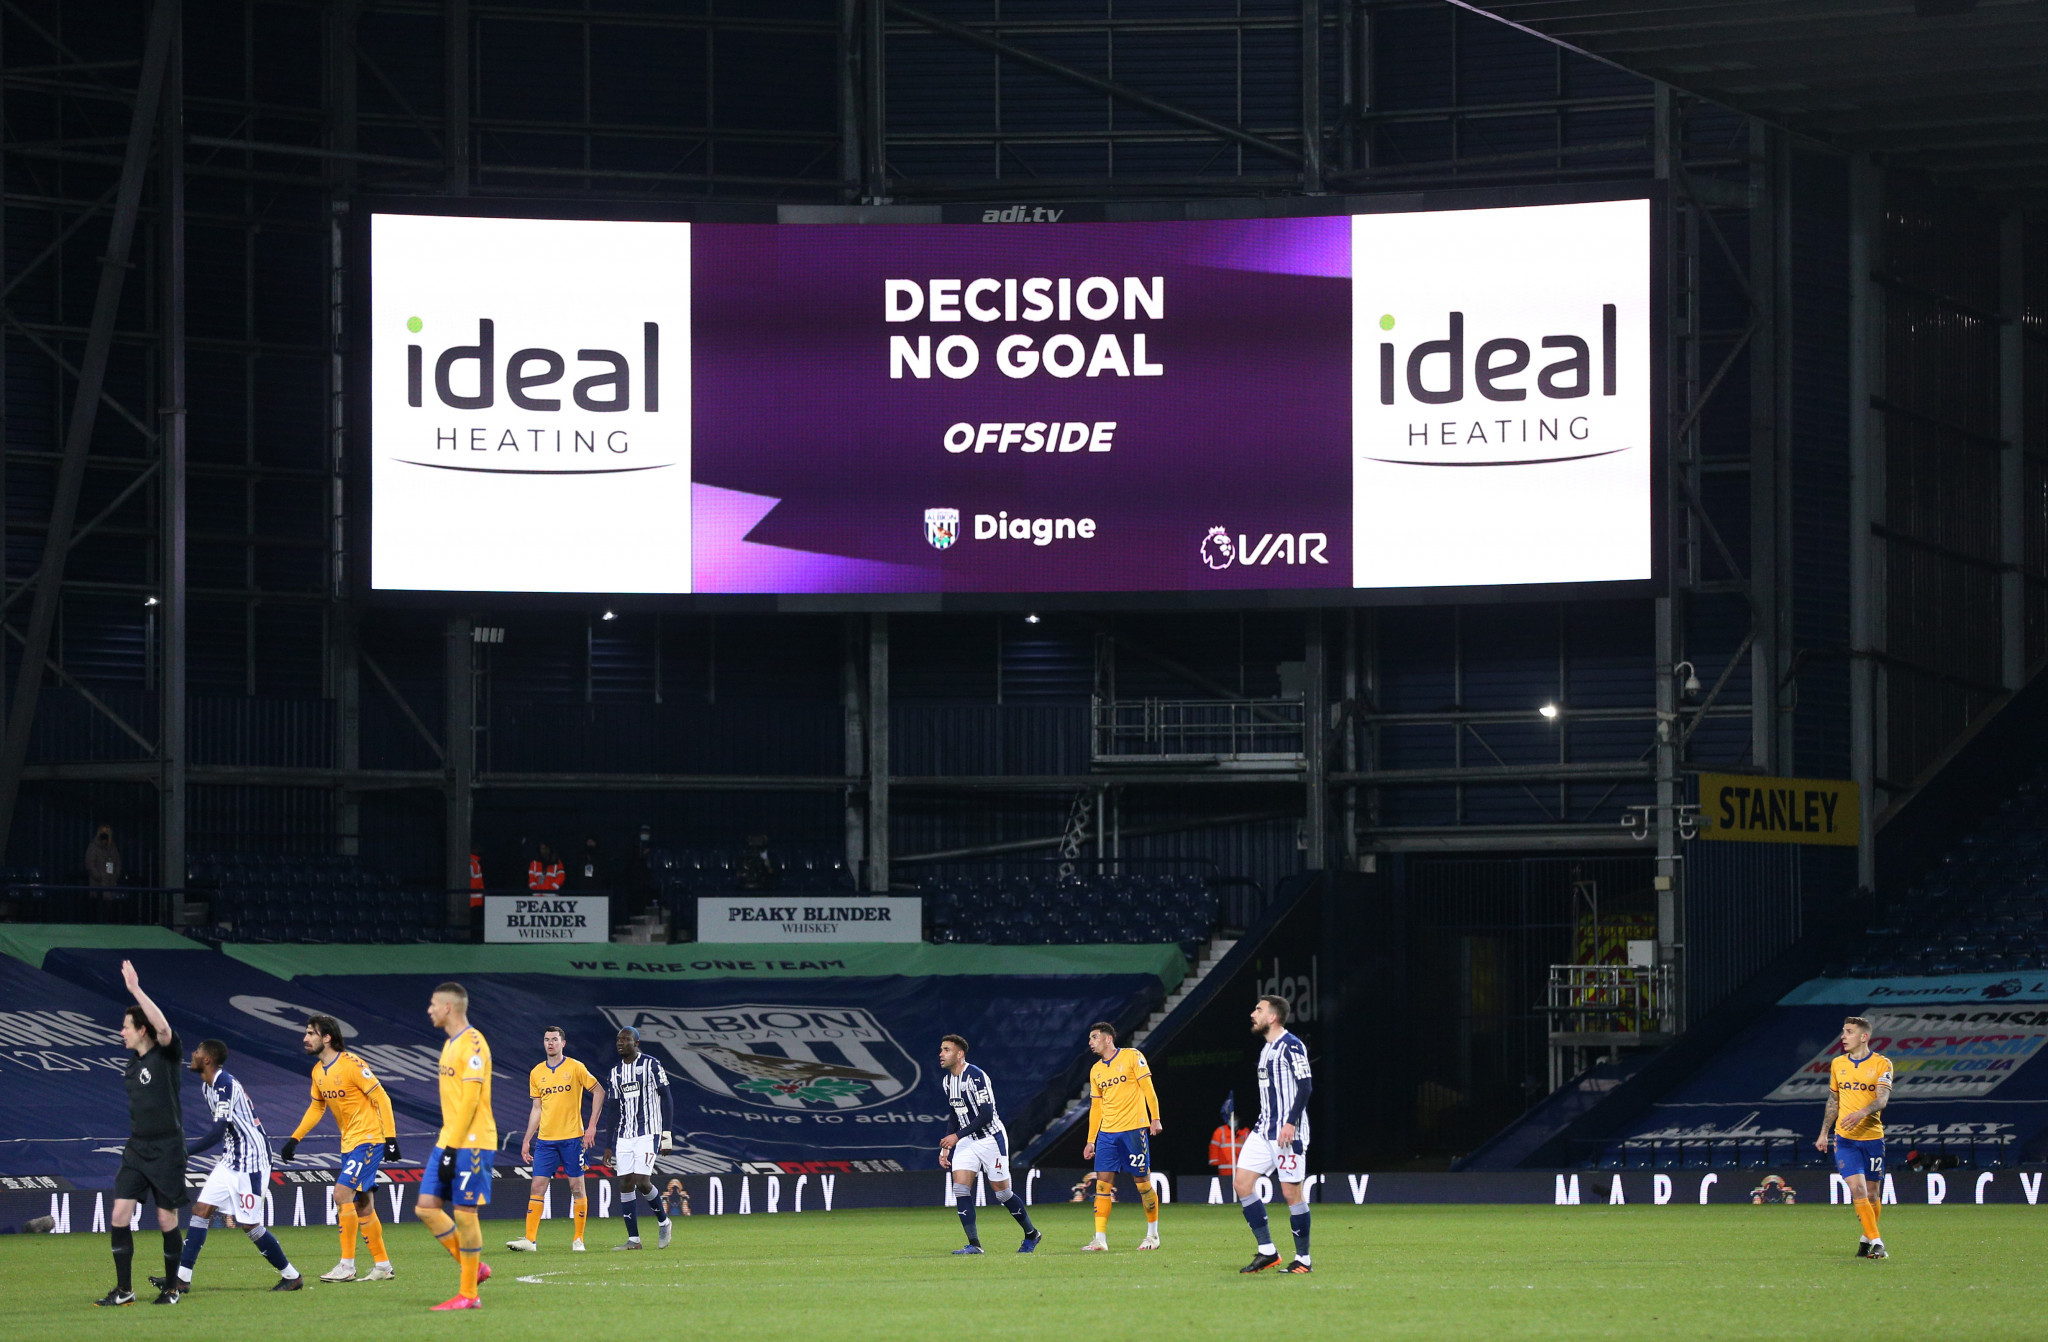 Narrow offside decisions have caused controversy in several European leagues ©Getty Images